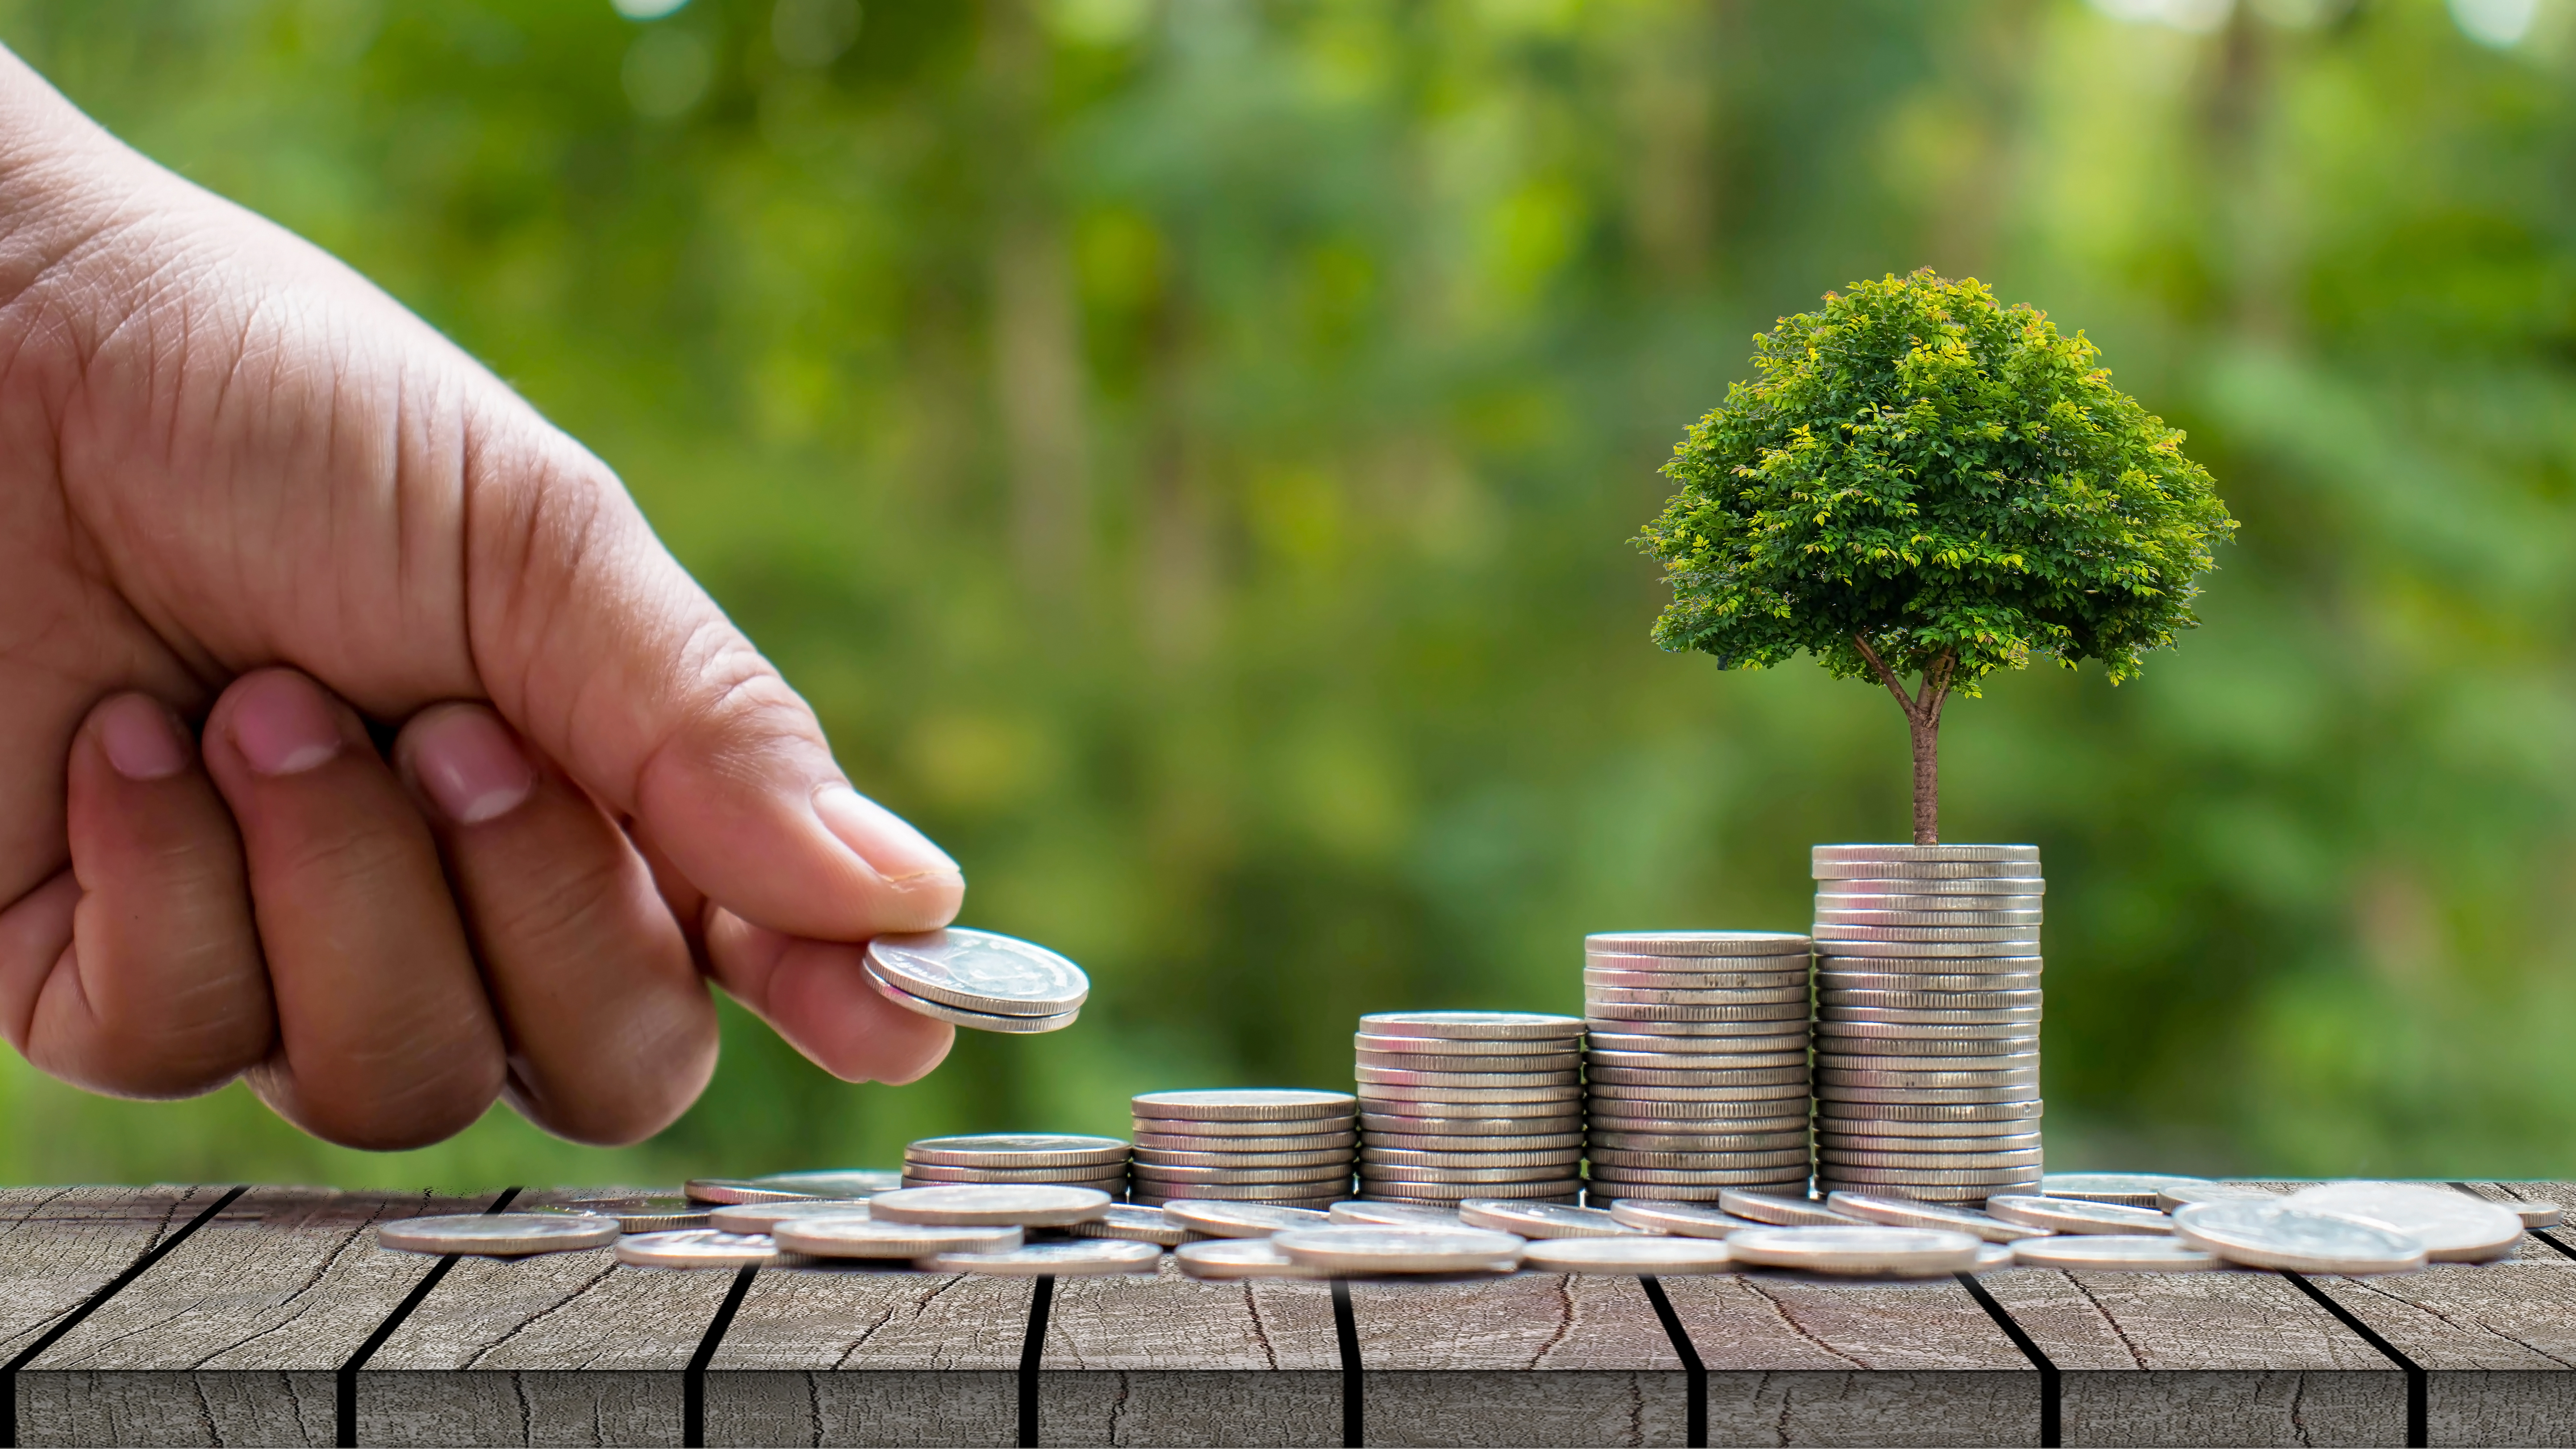 Planting trees on piles of coins and wooden floors. Ideas for saving money and investing.